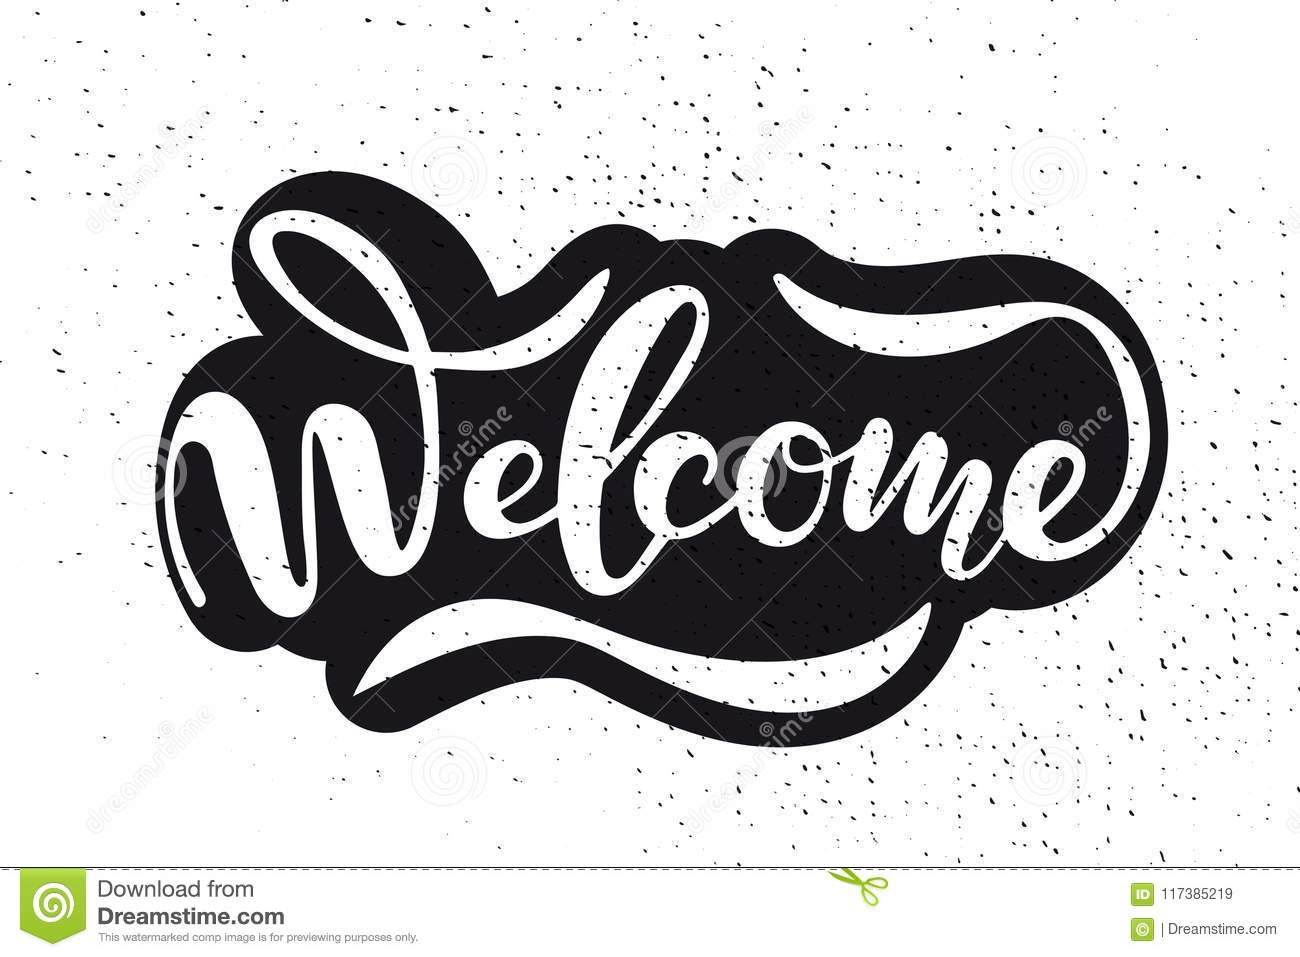 Hand sketched Welcome lettering typography. Drawn art sign. Motivational text.